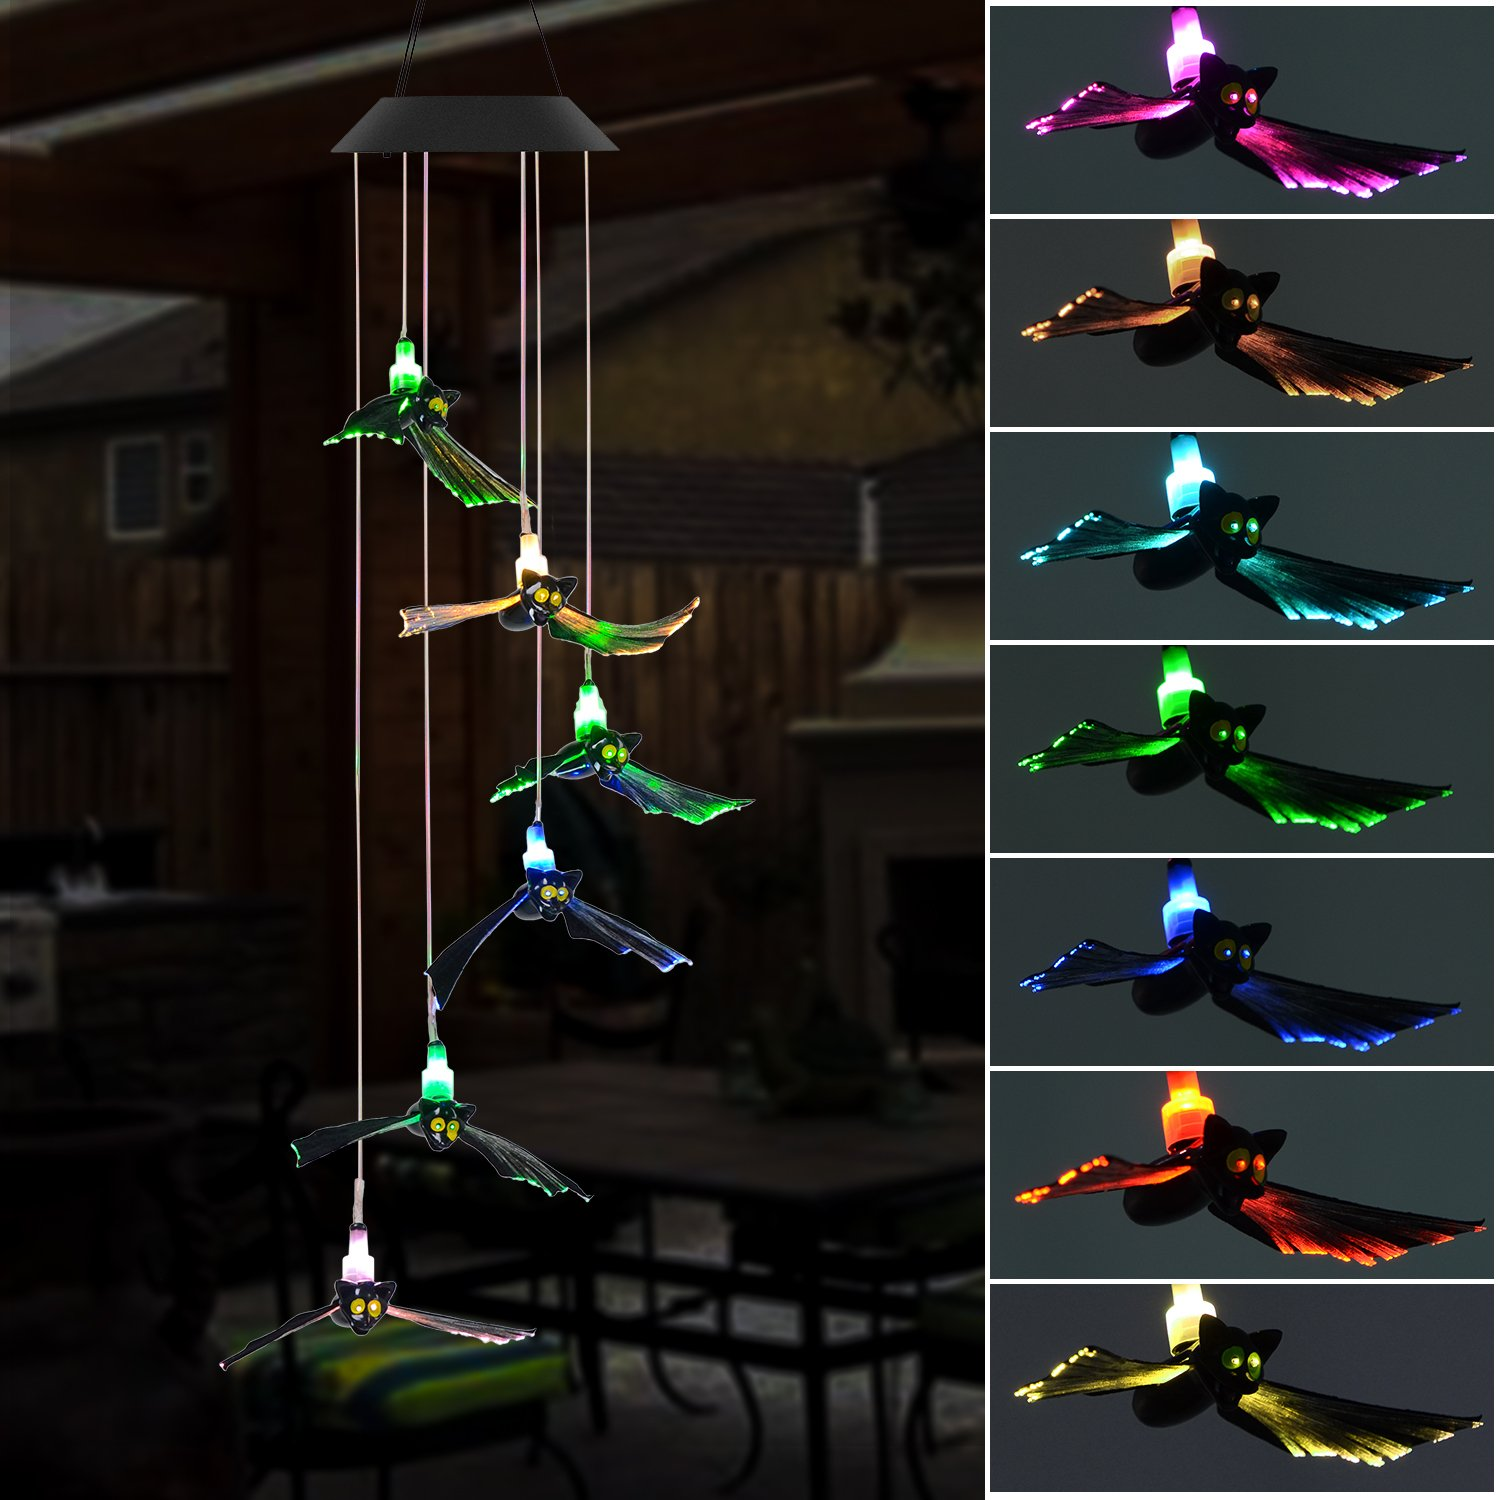 Doingart Solar Wind Chimes Outdoor - Solar Powered Light Bat LED Changing Light Color Wind Chime, Fiber Optic Bat Decorative Lights Halloween,Home,Party,Night Garden